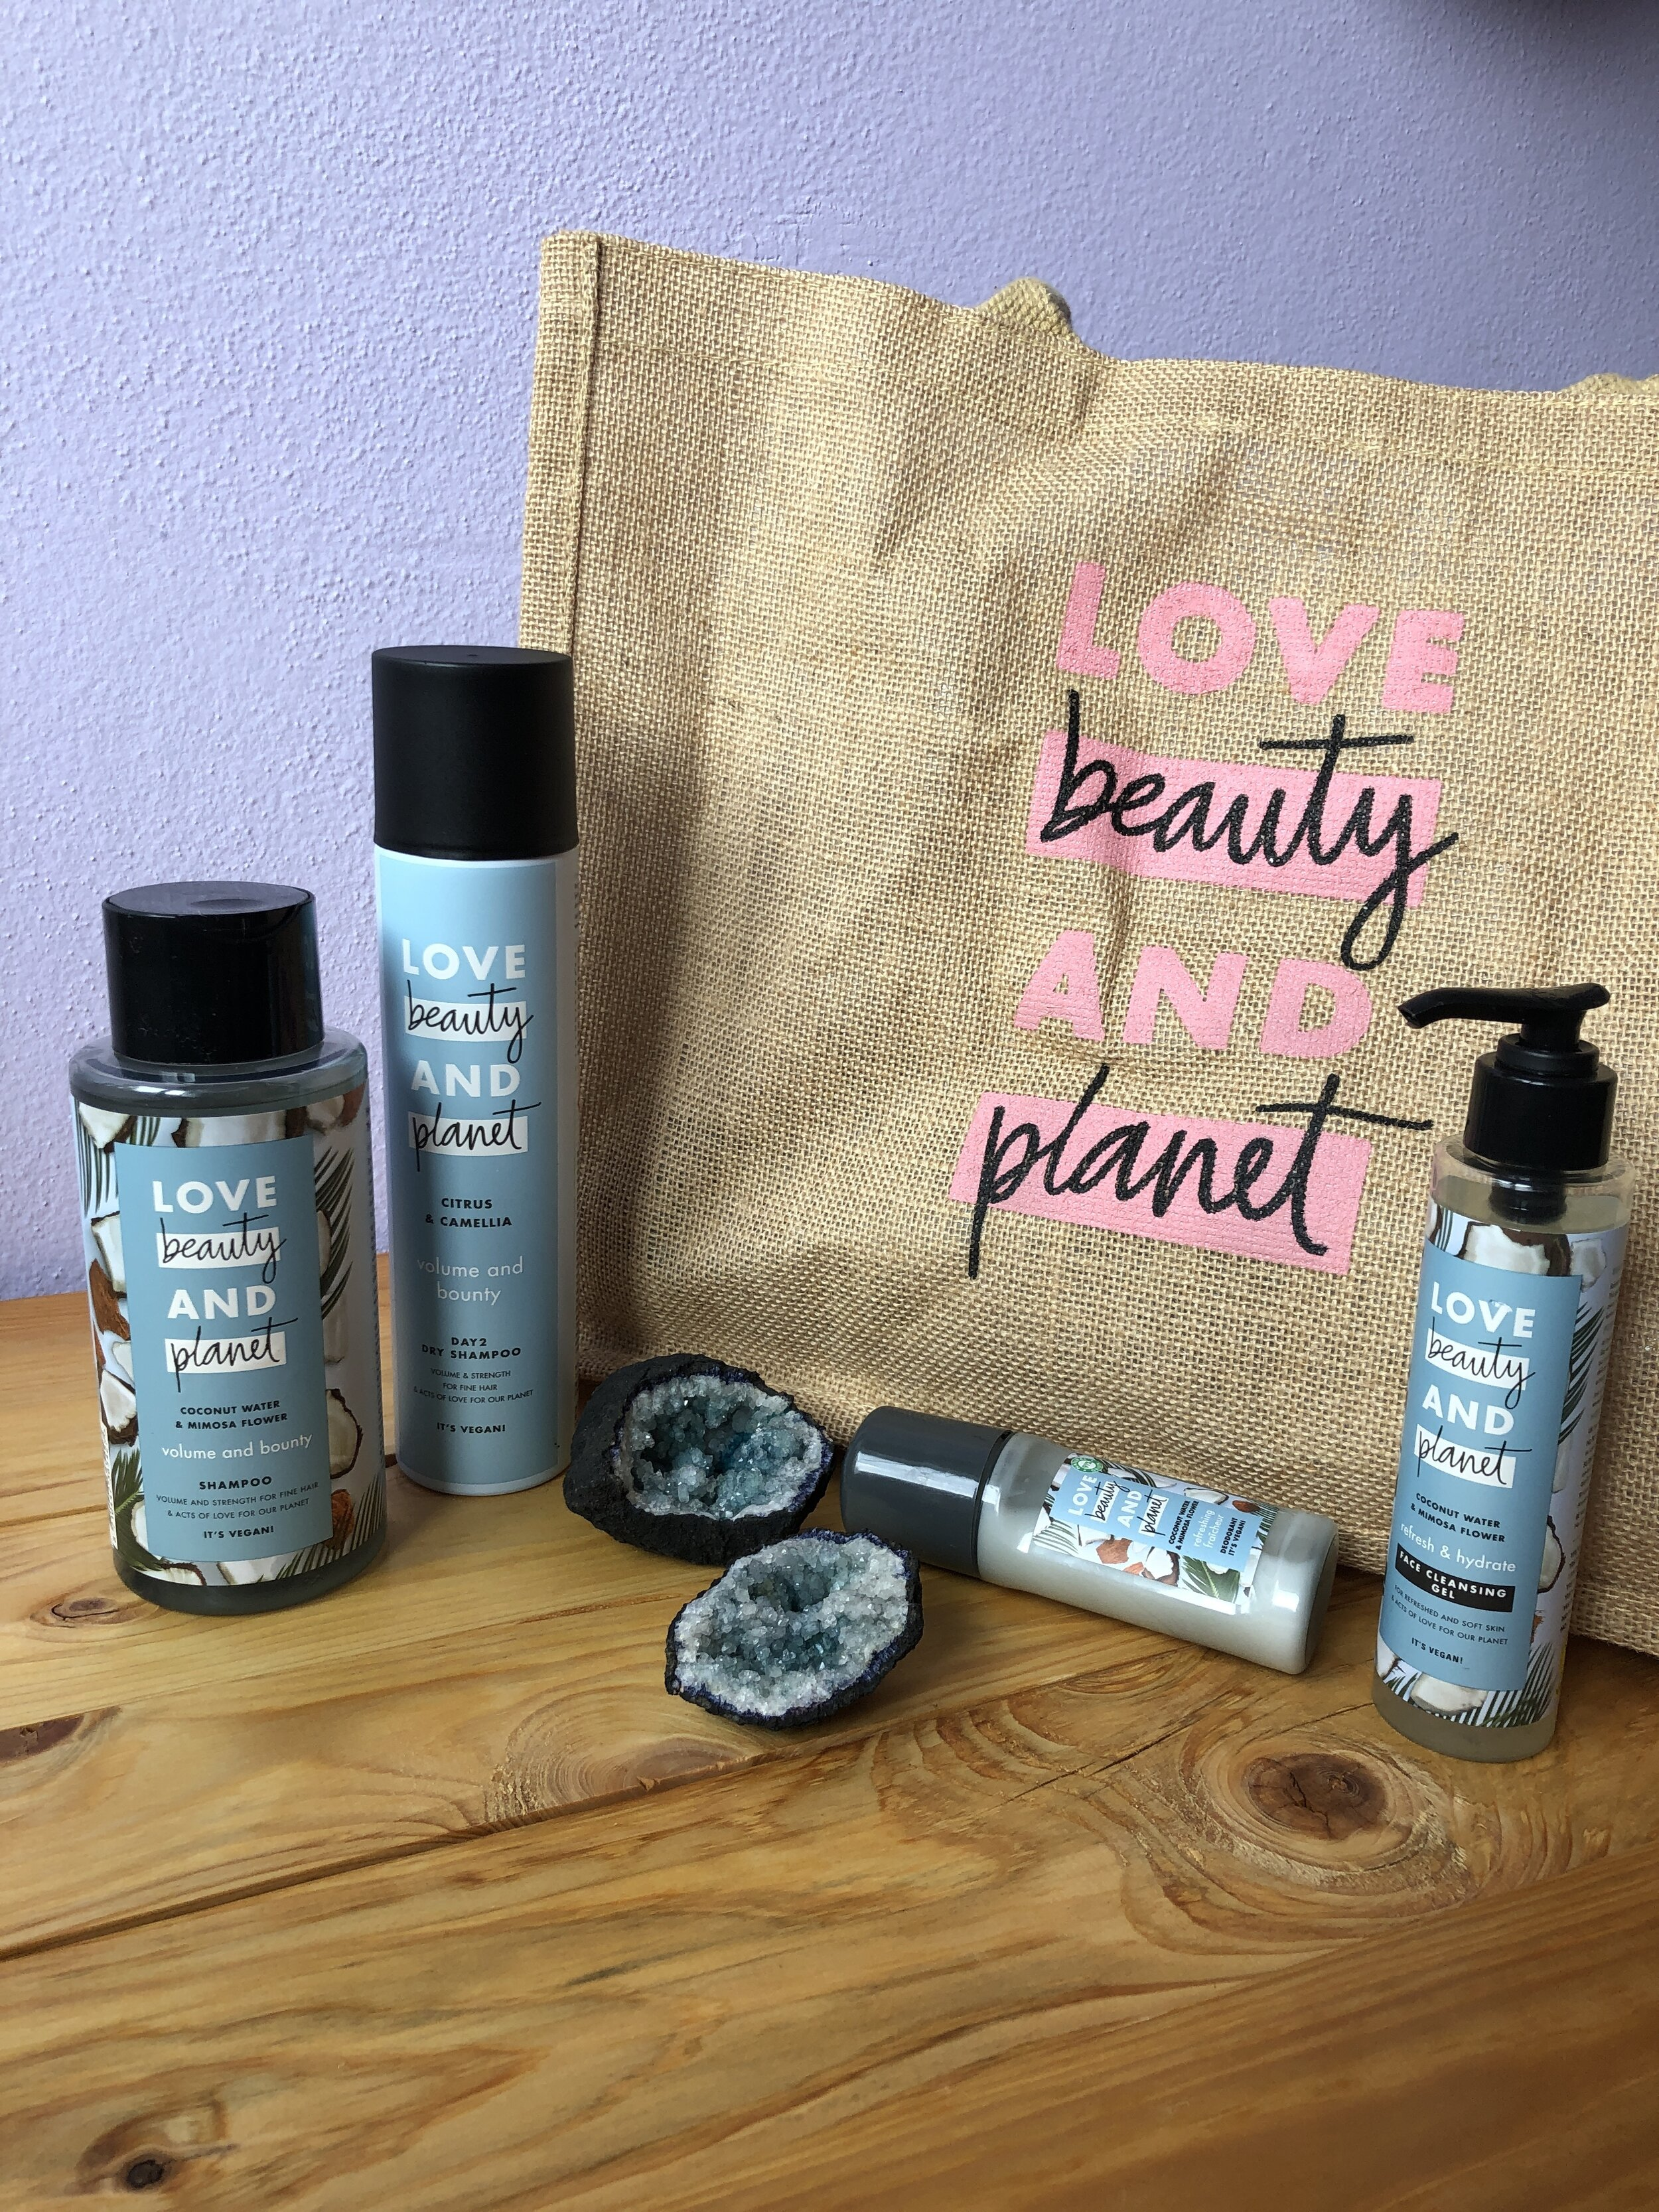 Love, Beauty & planet shampoo, dry shampoo, deodorant & face cleansing gel